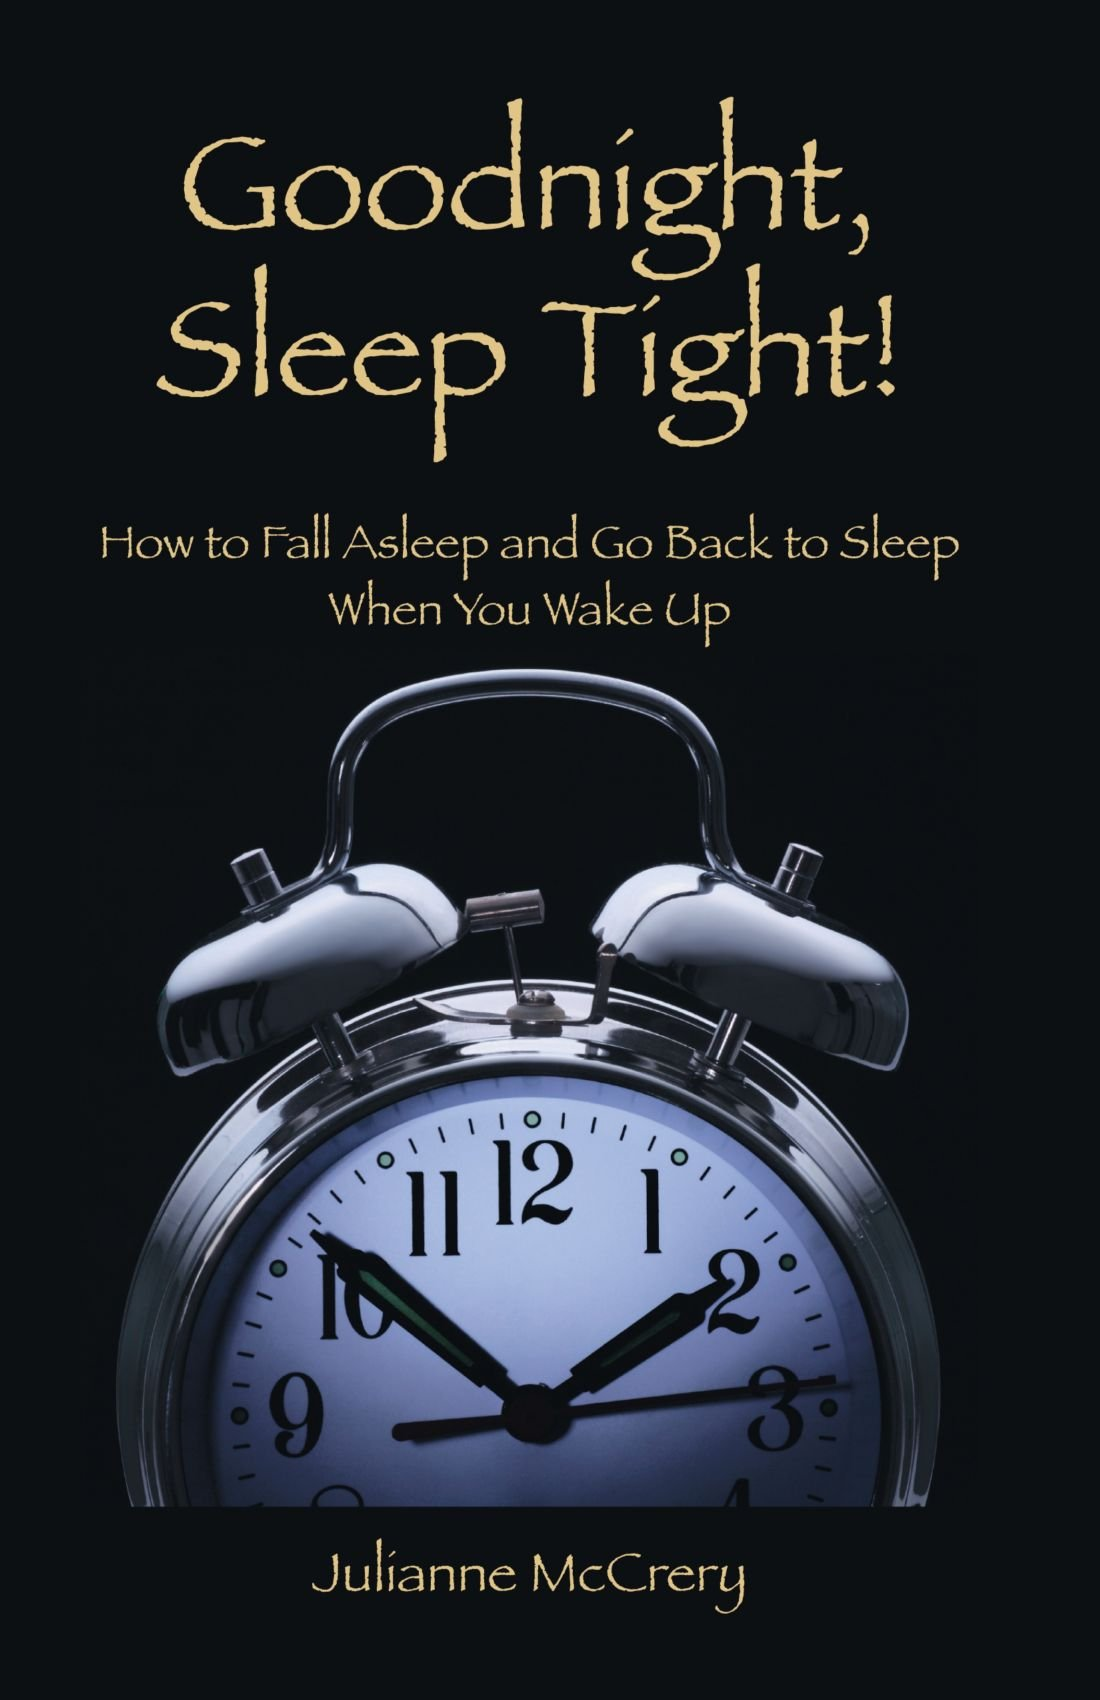 good night sleep tight how to fall asleep and go back to sleep when you wake up julianne mccrery 9781425185398 amazoncom books